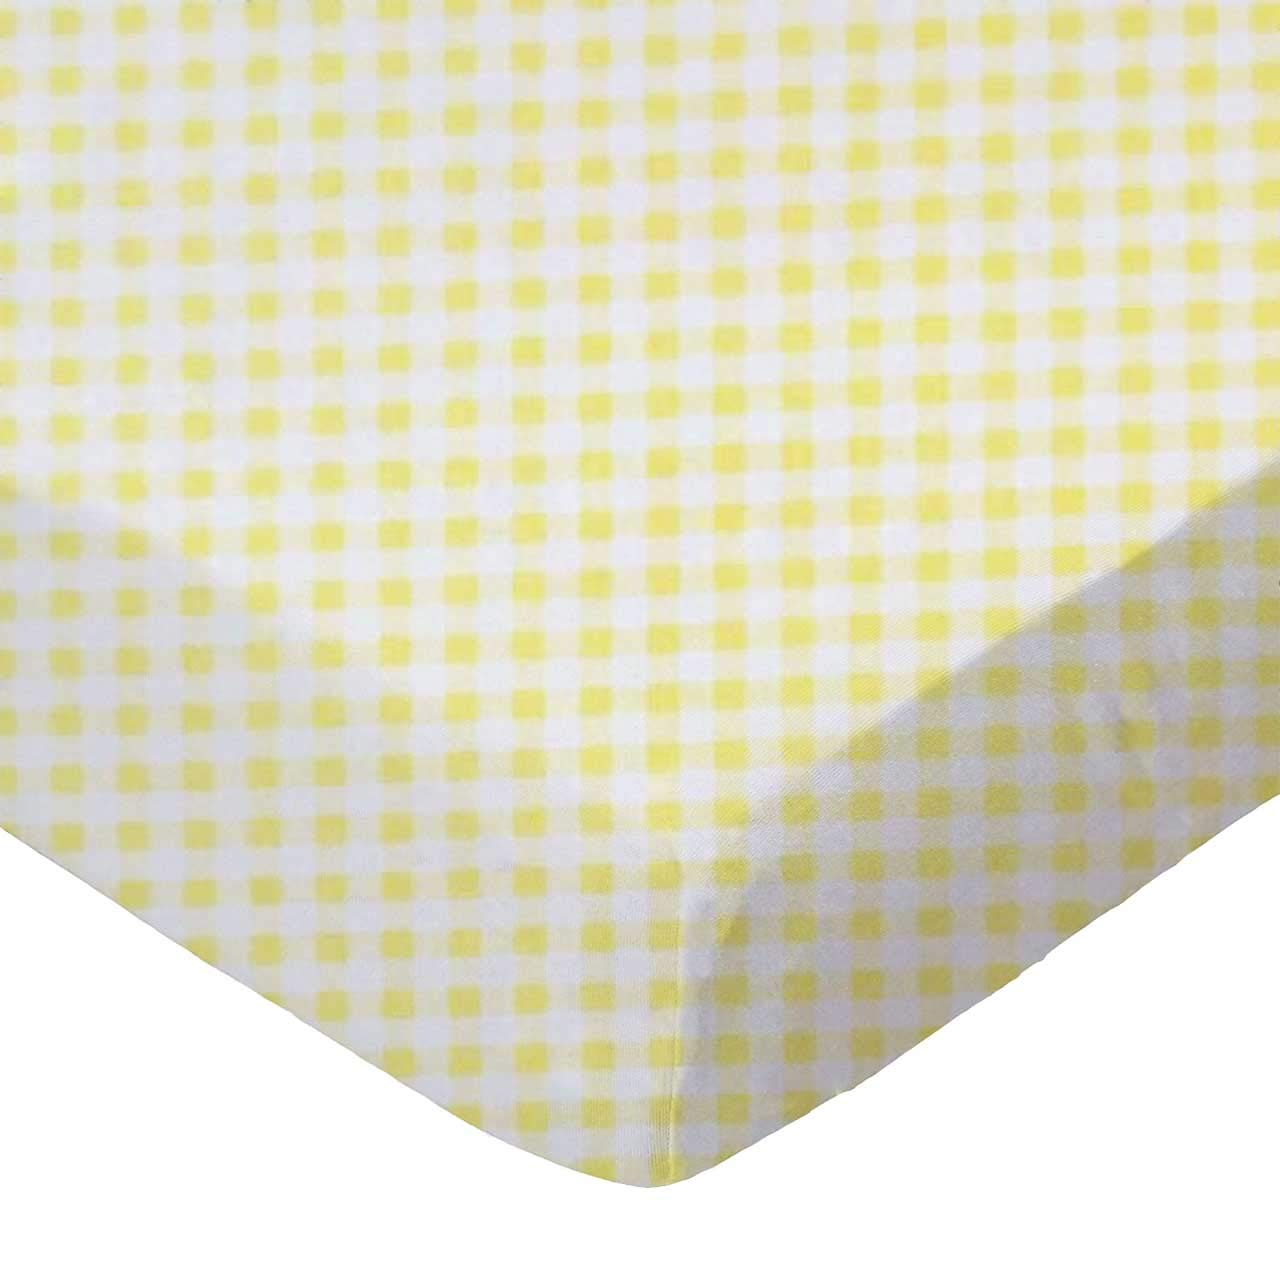 SheetWorld Fitted Basket Sheet - Yellow Gingham Jersey - Made In USA